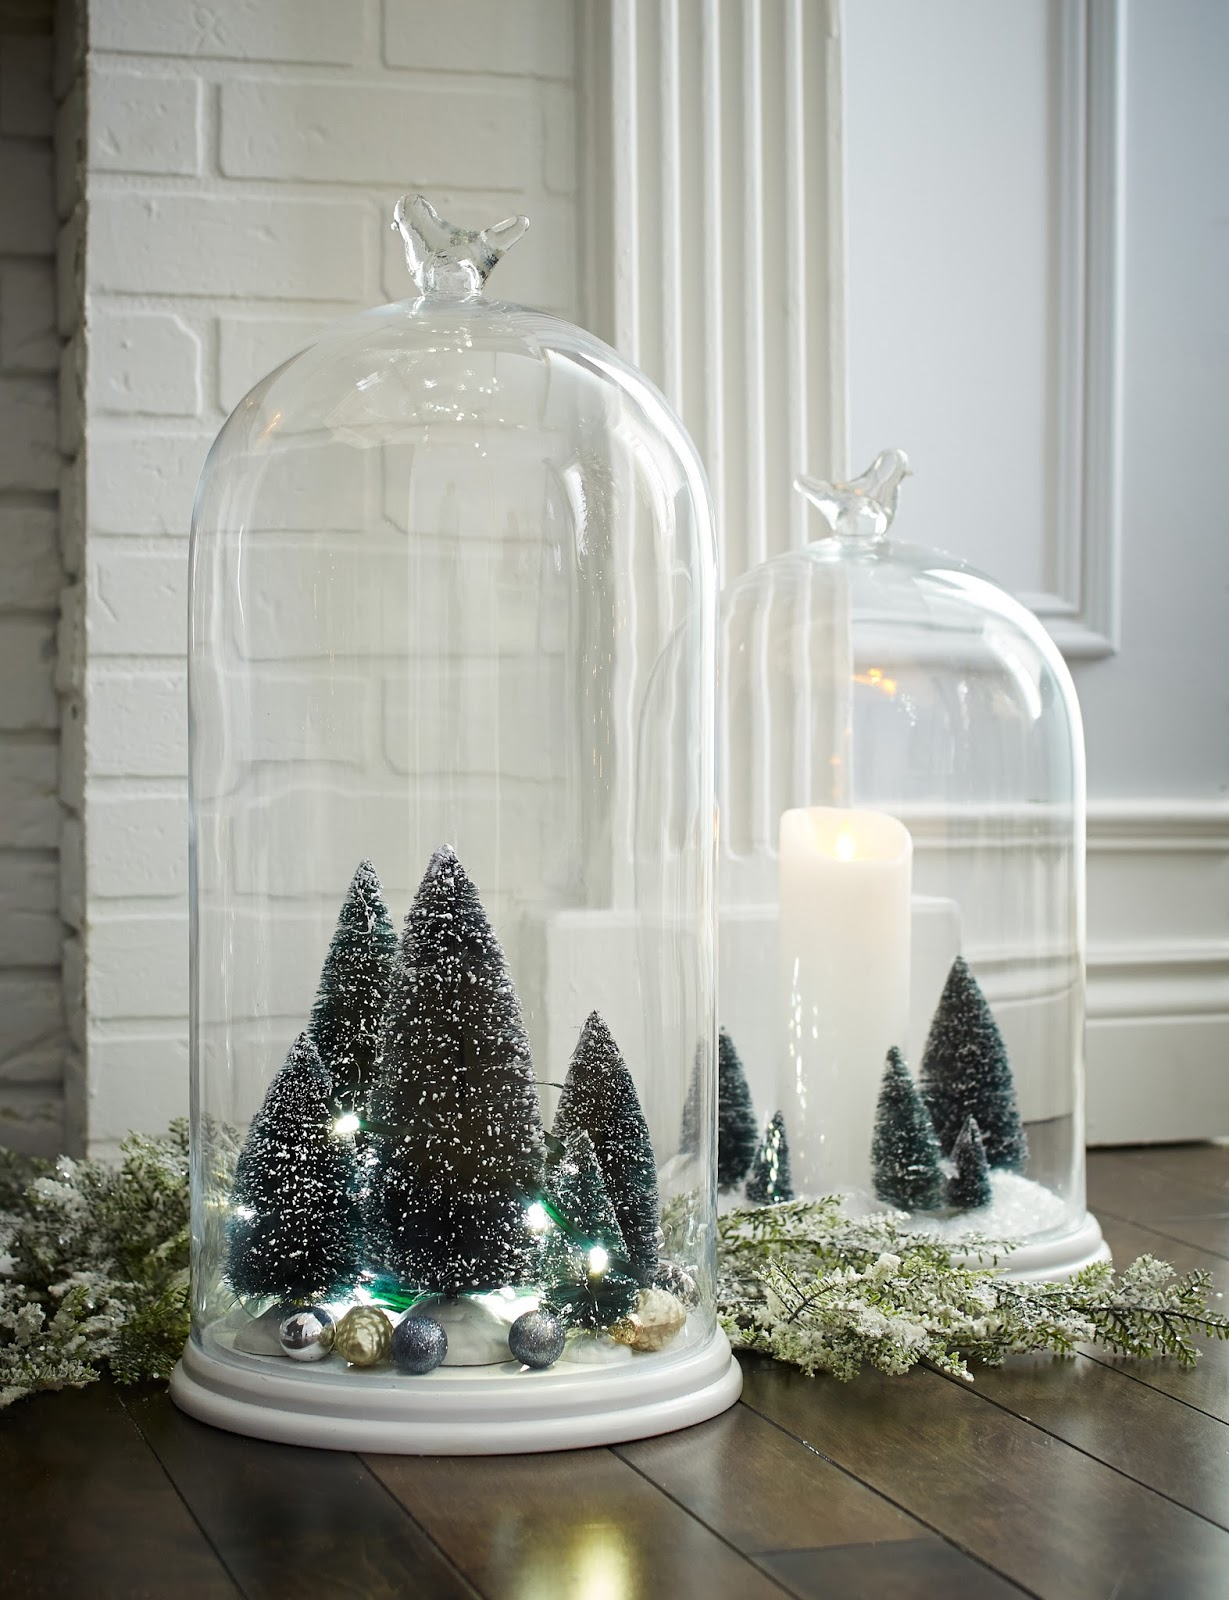 Elliven studio decorating with silver for the holidays - Groayes glas weihnachtlich dekorieren ...